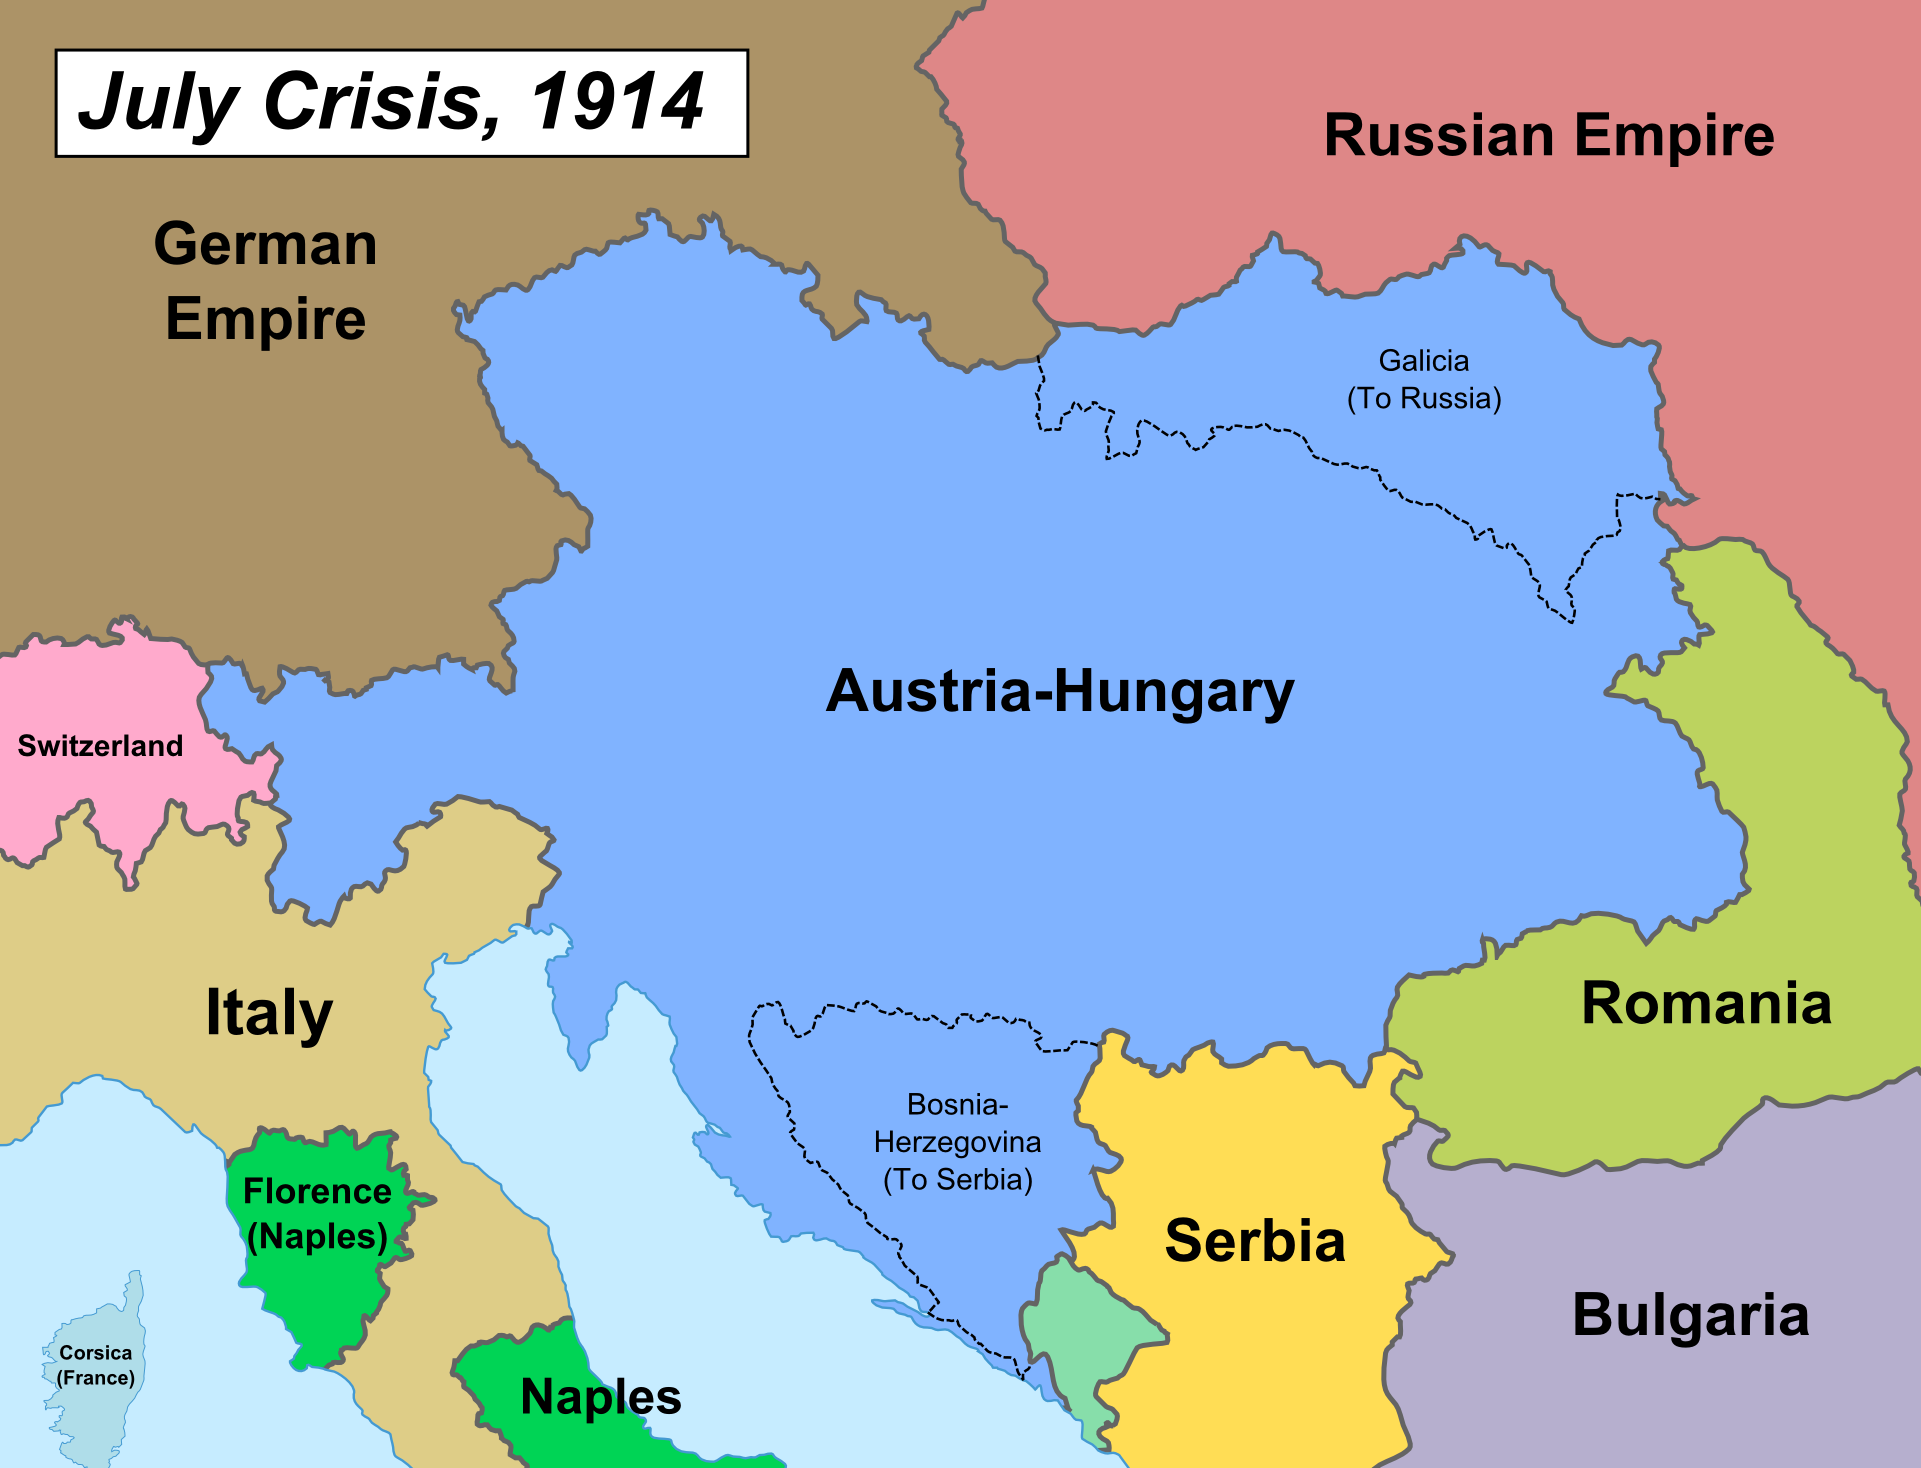 an essay on austrai hungarys war against serbia Austria-hungary declares war on serbia, beginning world war i  nations allied  against germany were eventually to include great britain, russia, italy,.